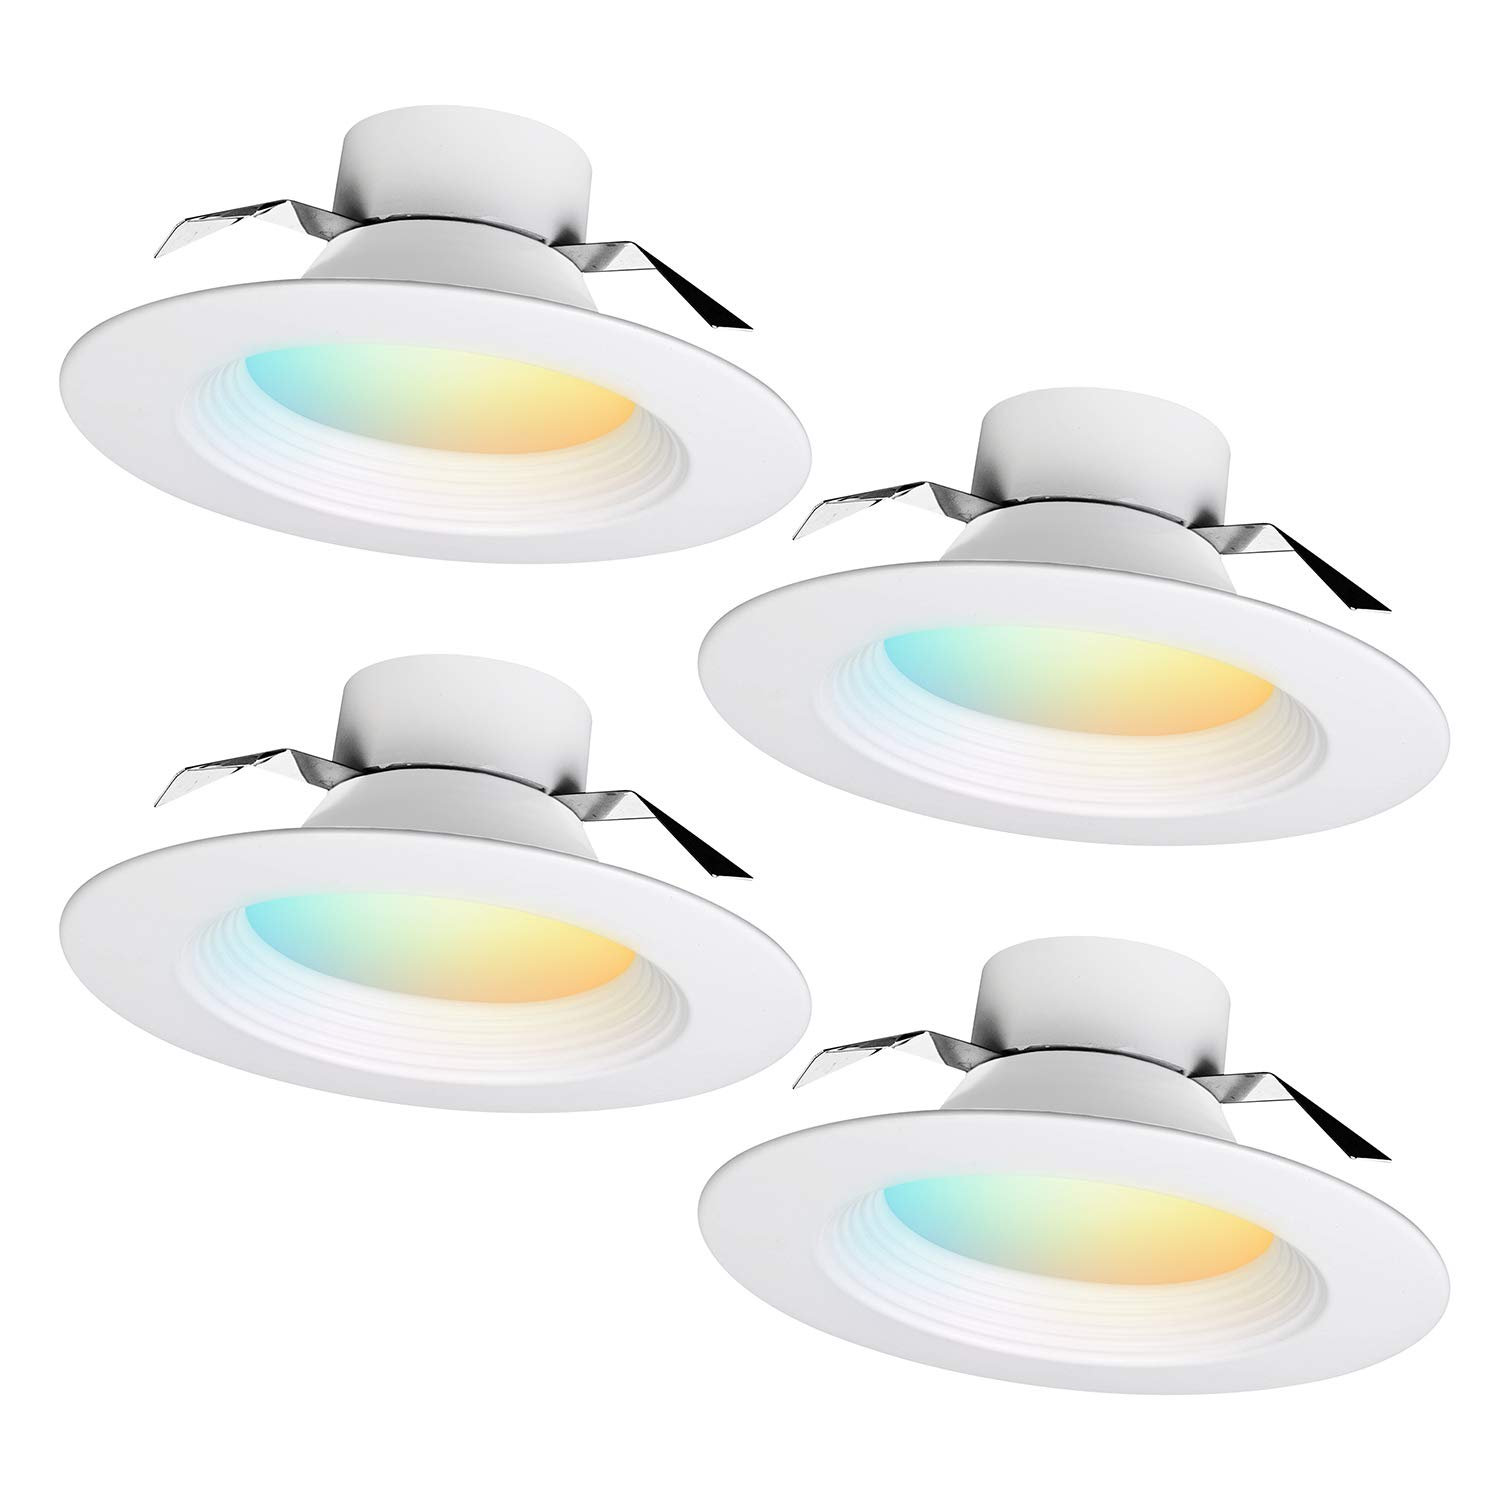 iBRIGHT 6 Inch Smart WiFi LED Recessed Downlight Ceiling Light Dimmable Multicolor, 13W 1050Lm 120VAC 2700K-6500K 60 Hz RGB No Hub Required (Compatible with Alexa & Google Assistant) (4 Pack)